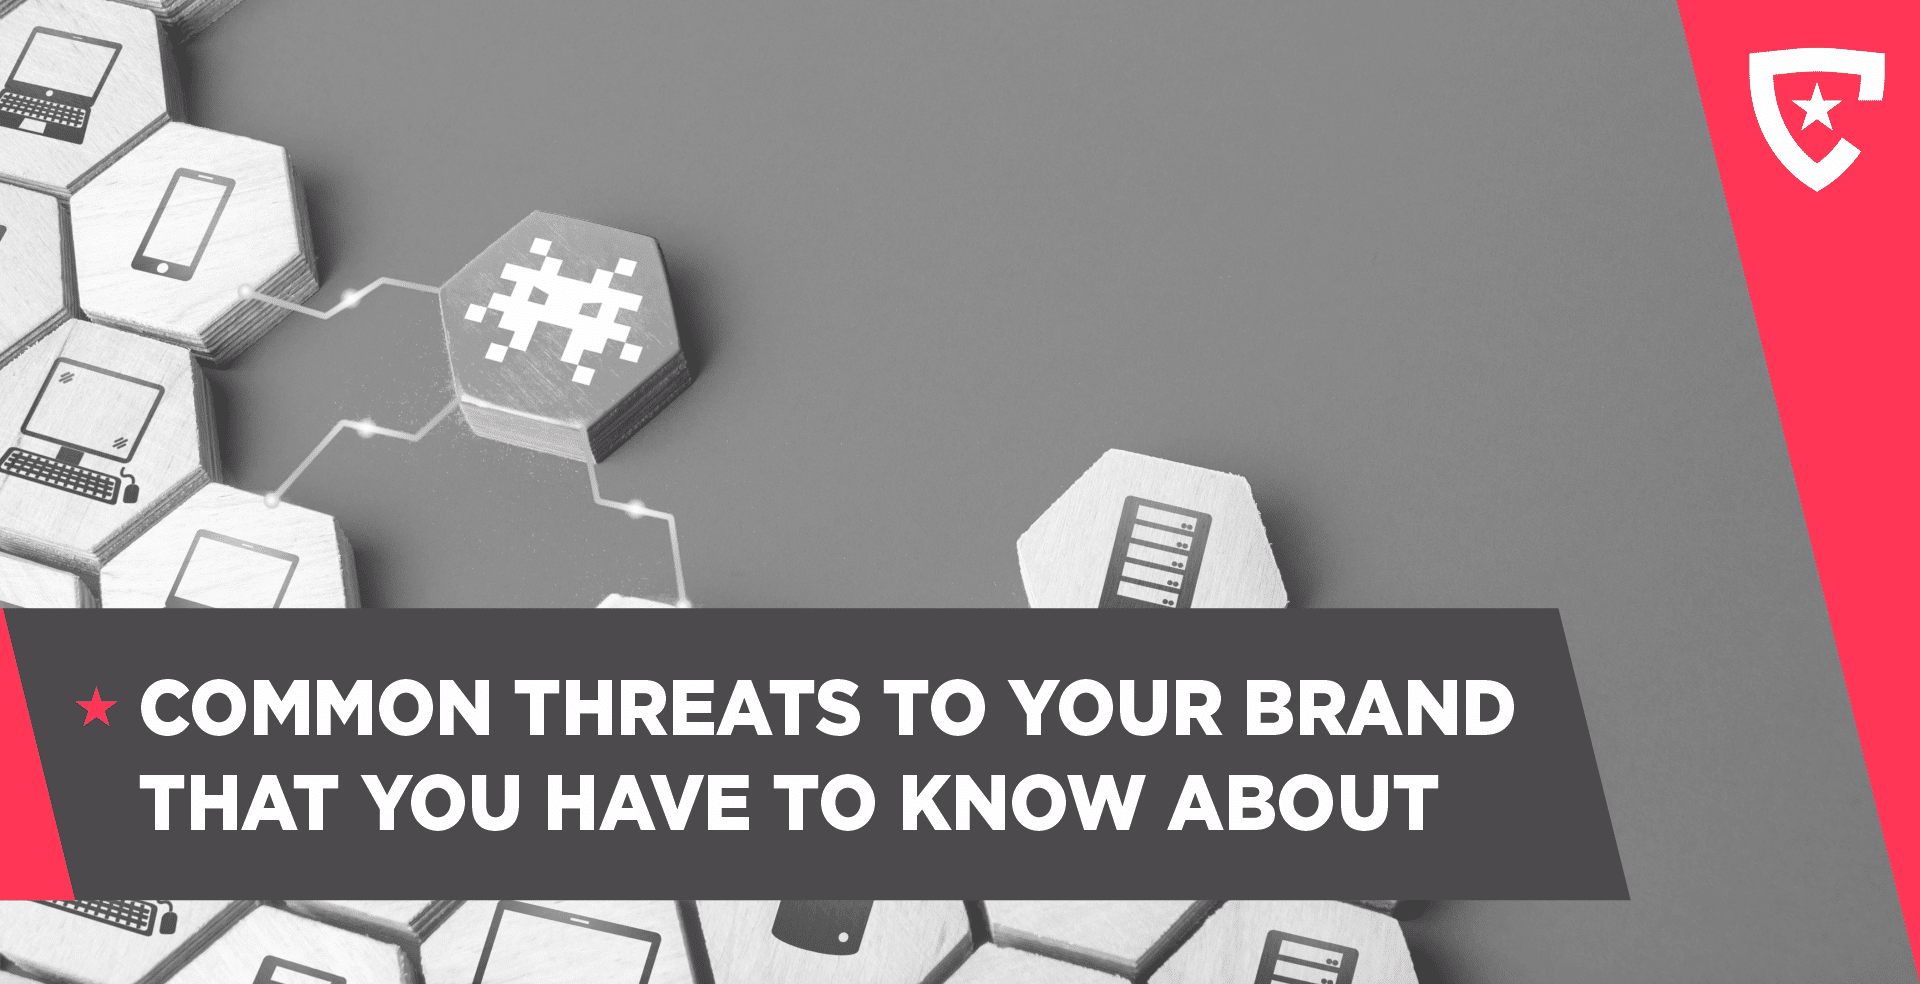 Common Threats to Your Brand That You Have to Know About